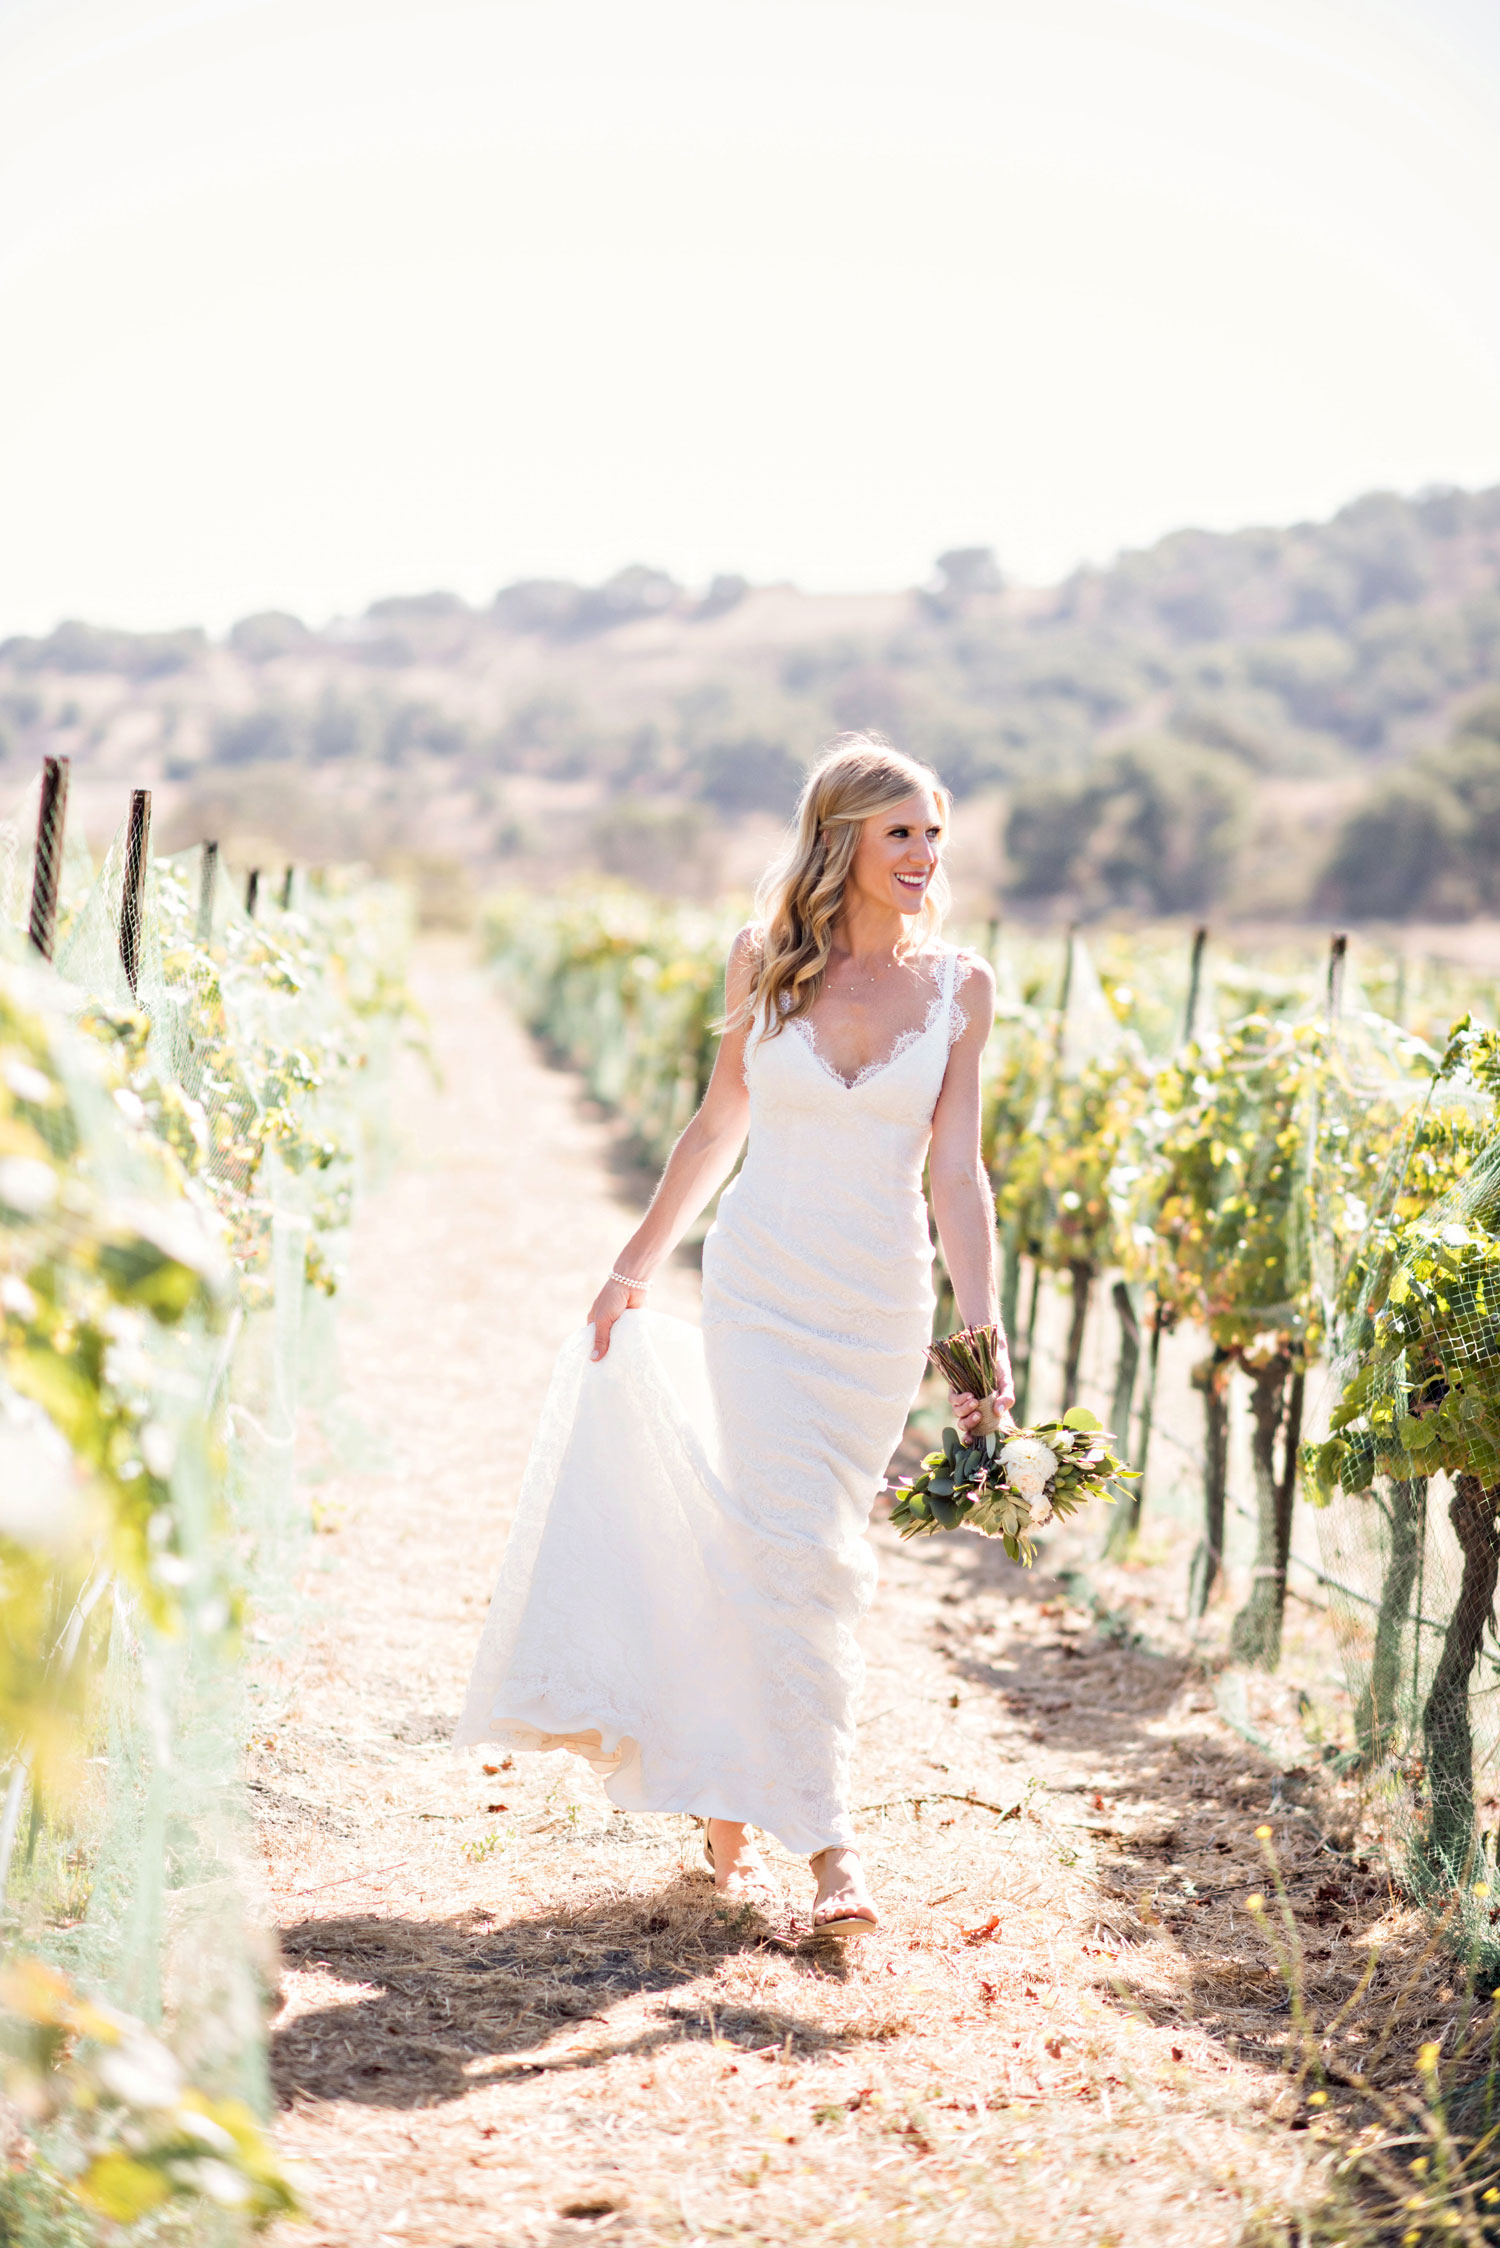 Laurie Bailey Photography bride in vineyard holding wedding dress sunny day